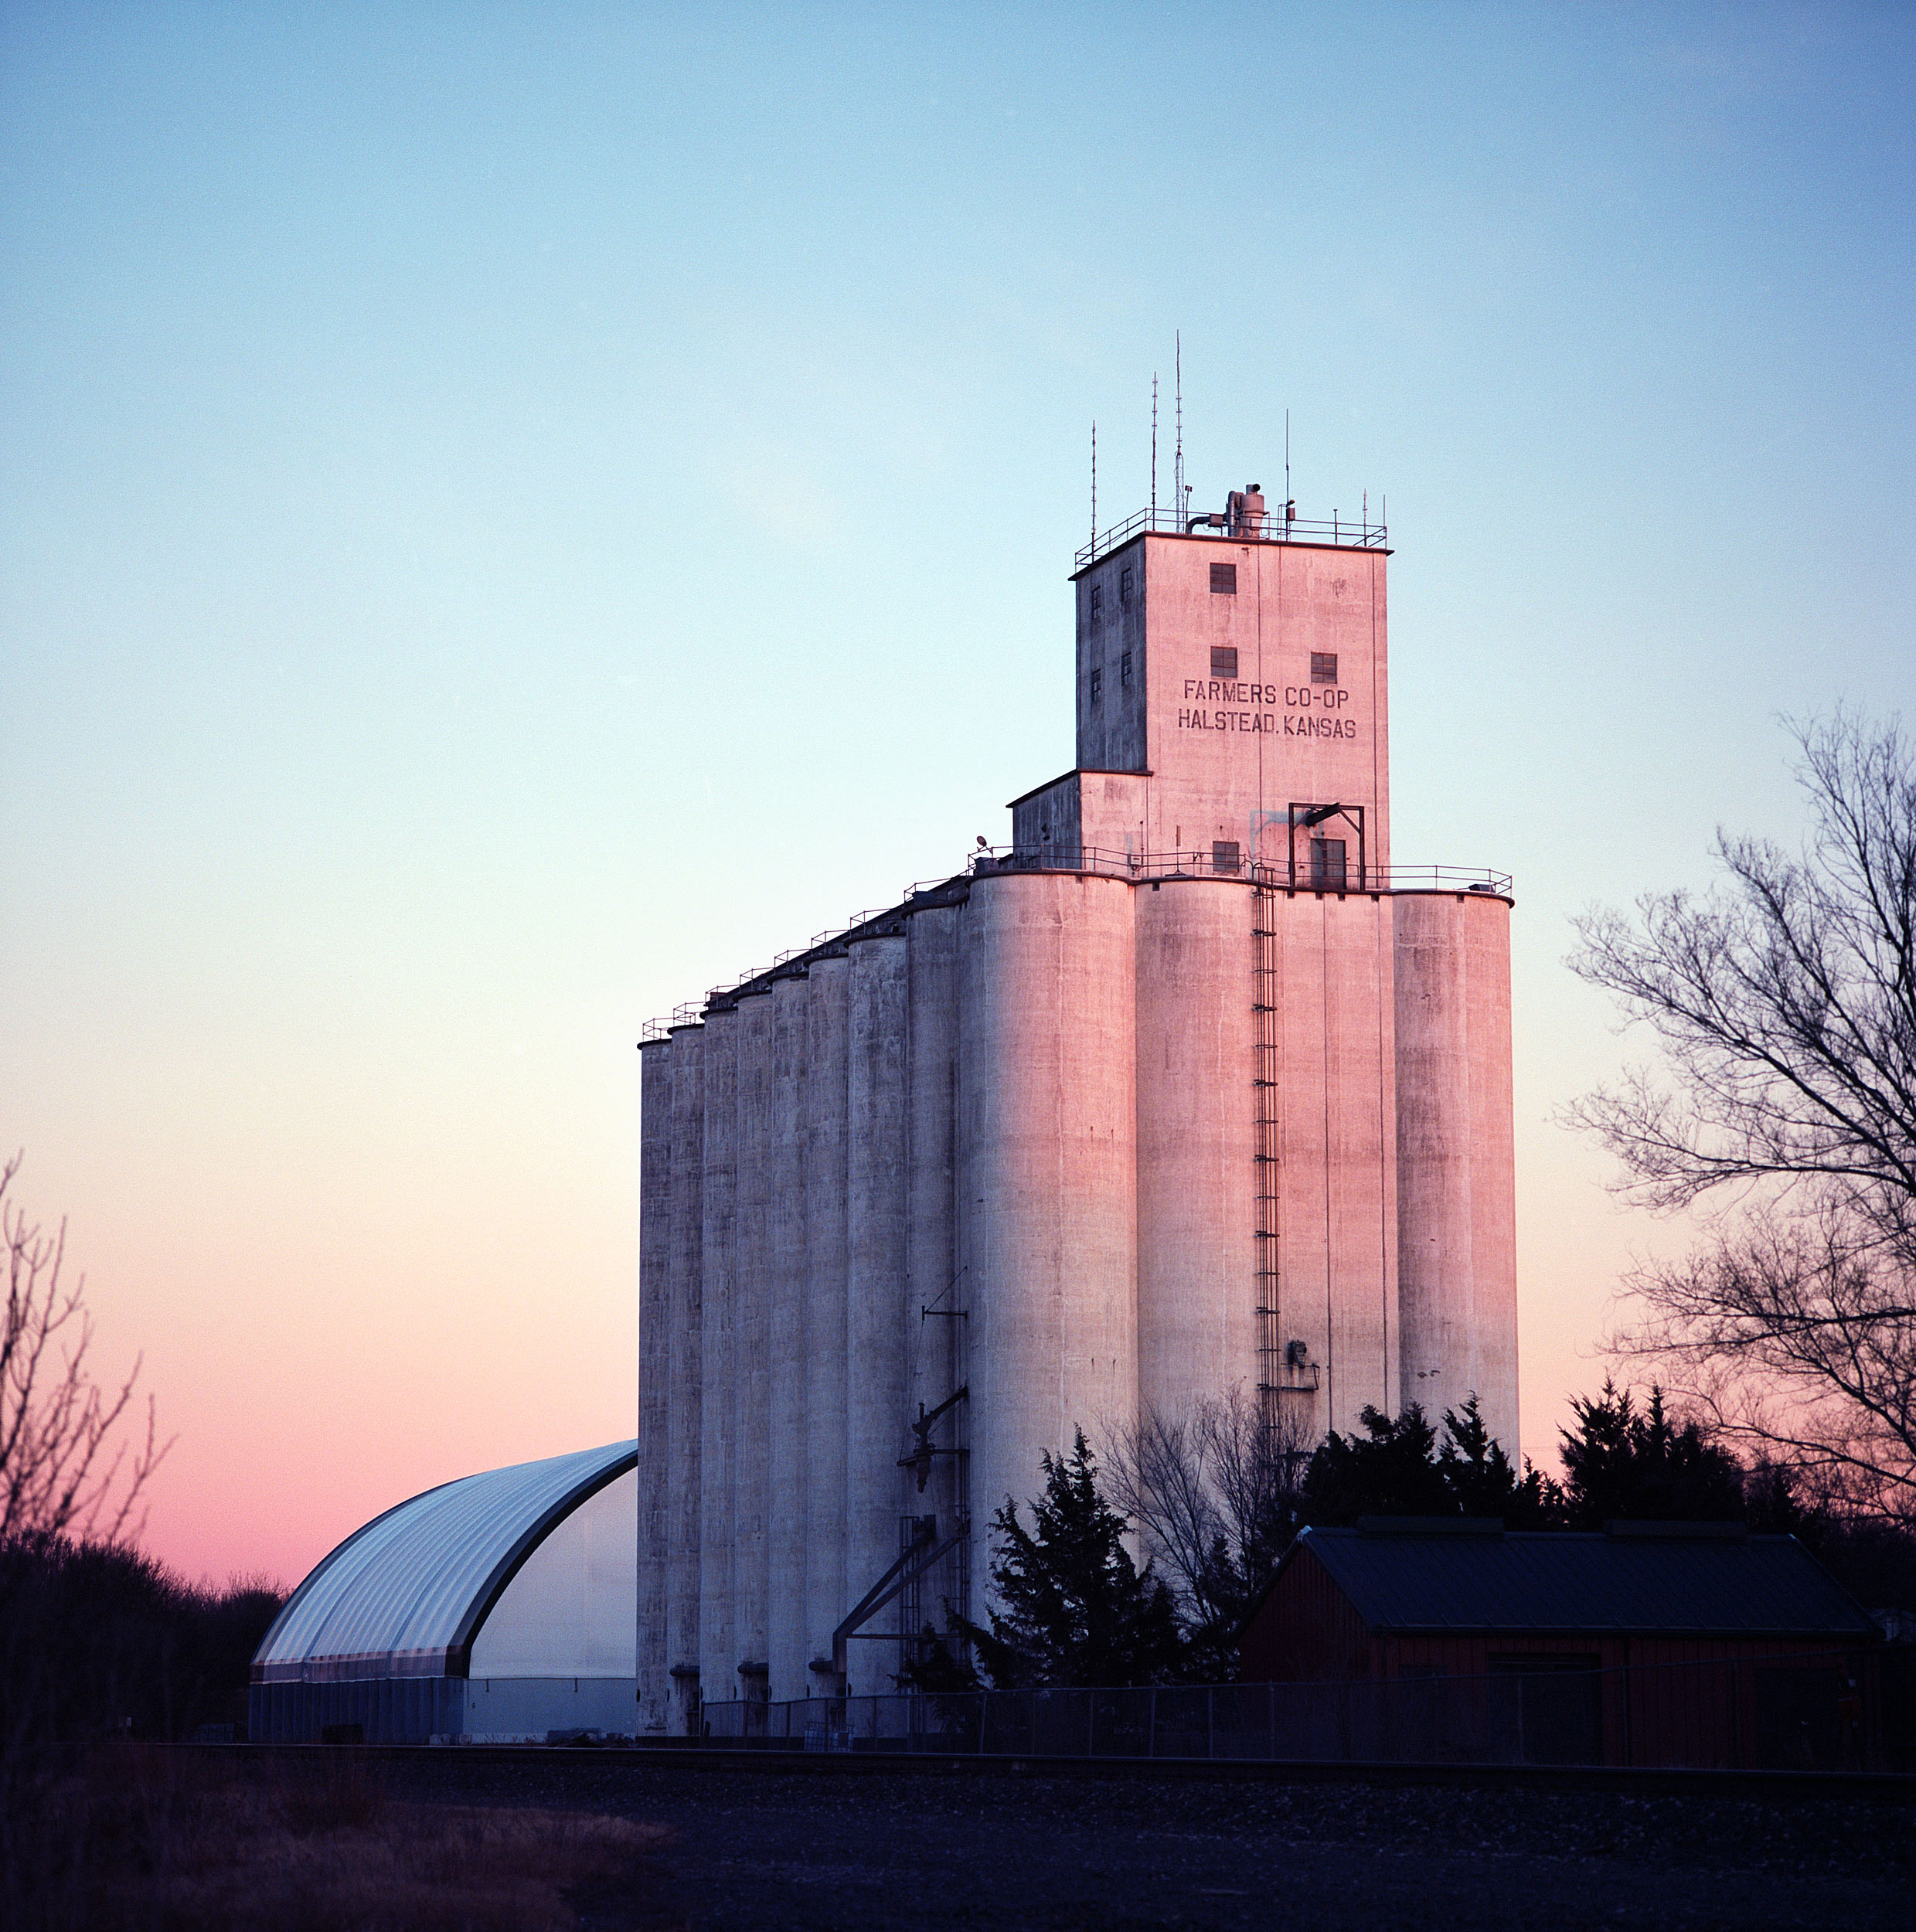 Grain mill, Halstead, Kansas, photographed after eating a Subway sandwich. I realize grain mills at dusk are visual low hanging fruit, but I couldn't resist!